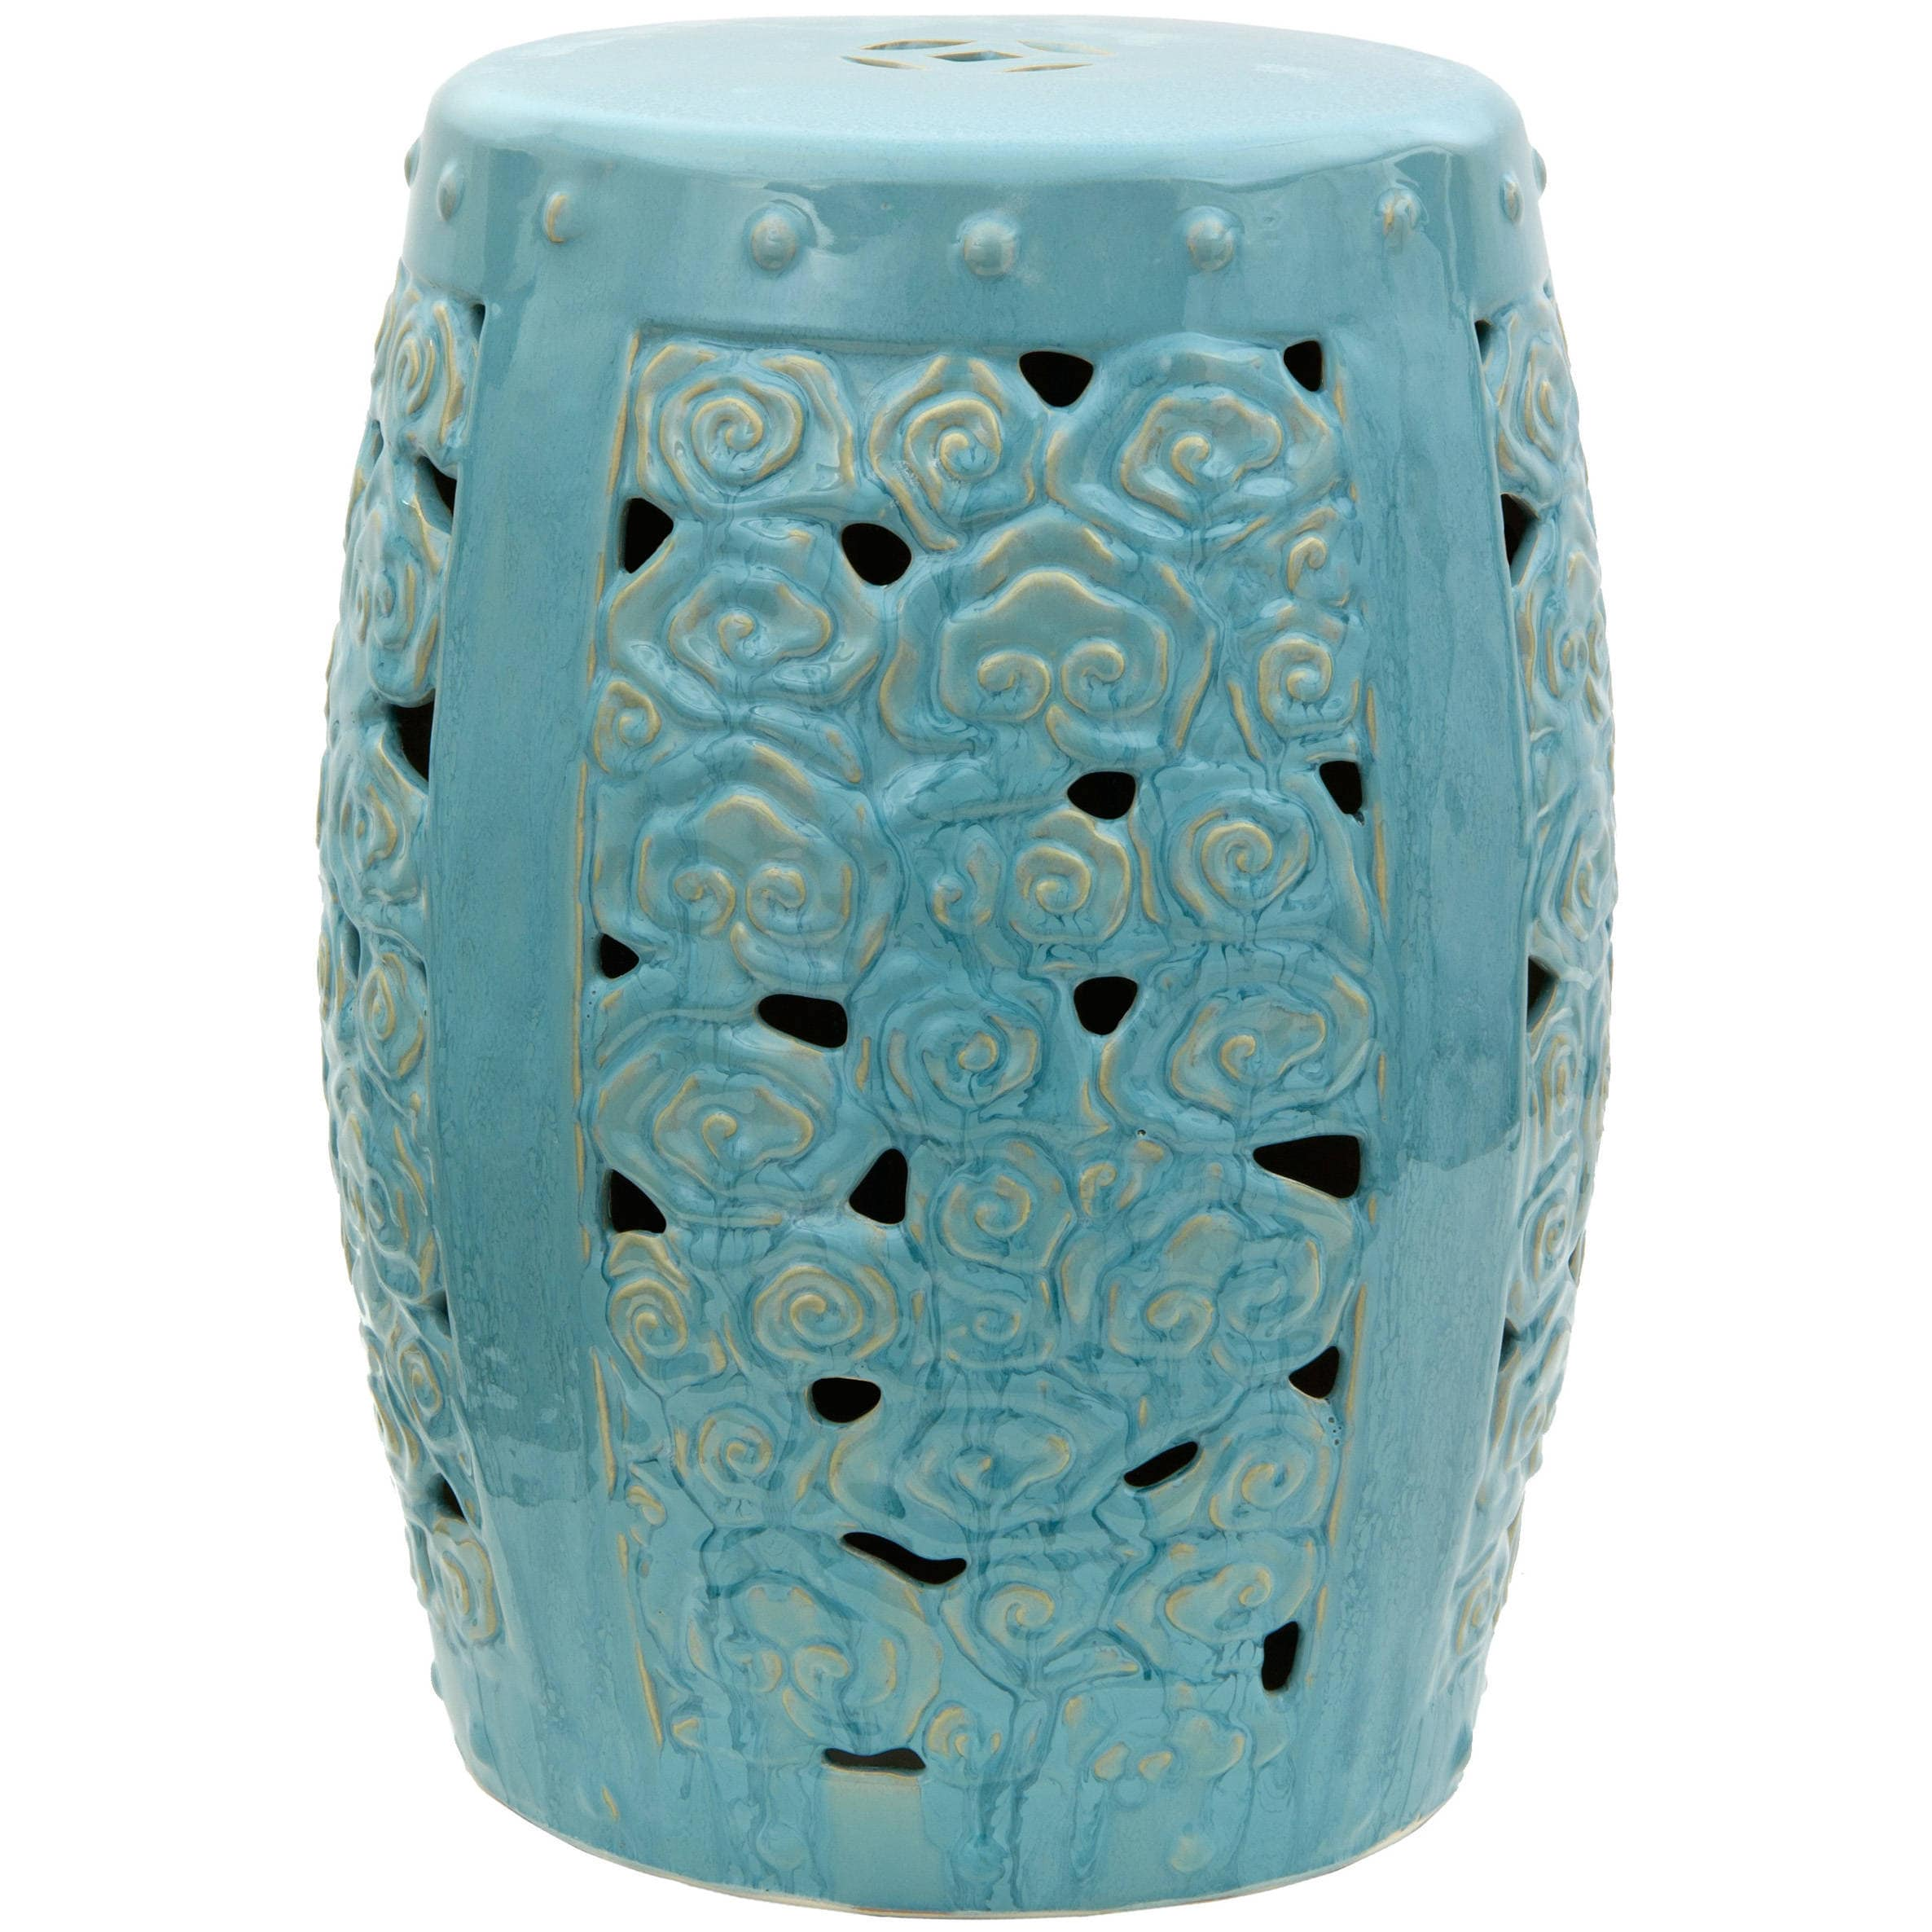 Handmade Carved Clouds Porcelain Garden Stool (China) - Blue